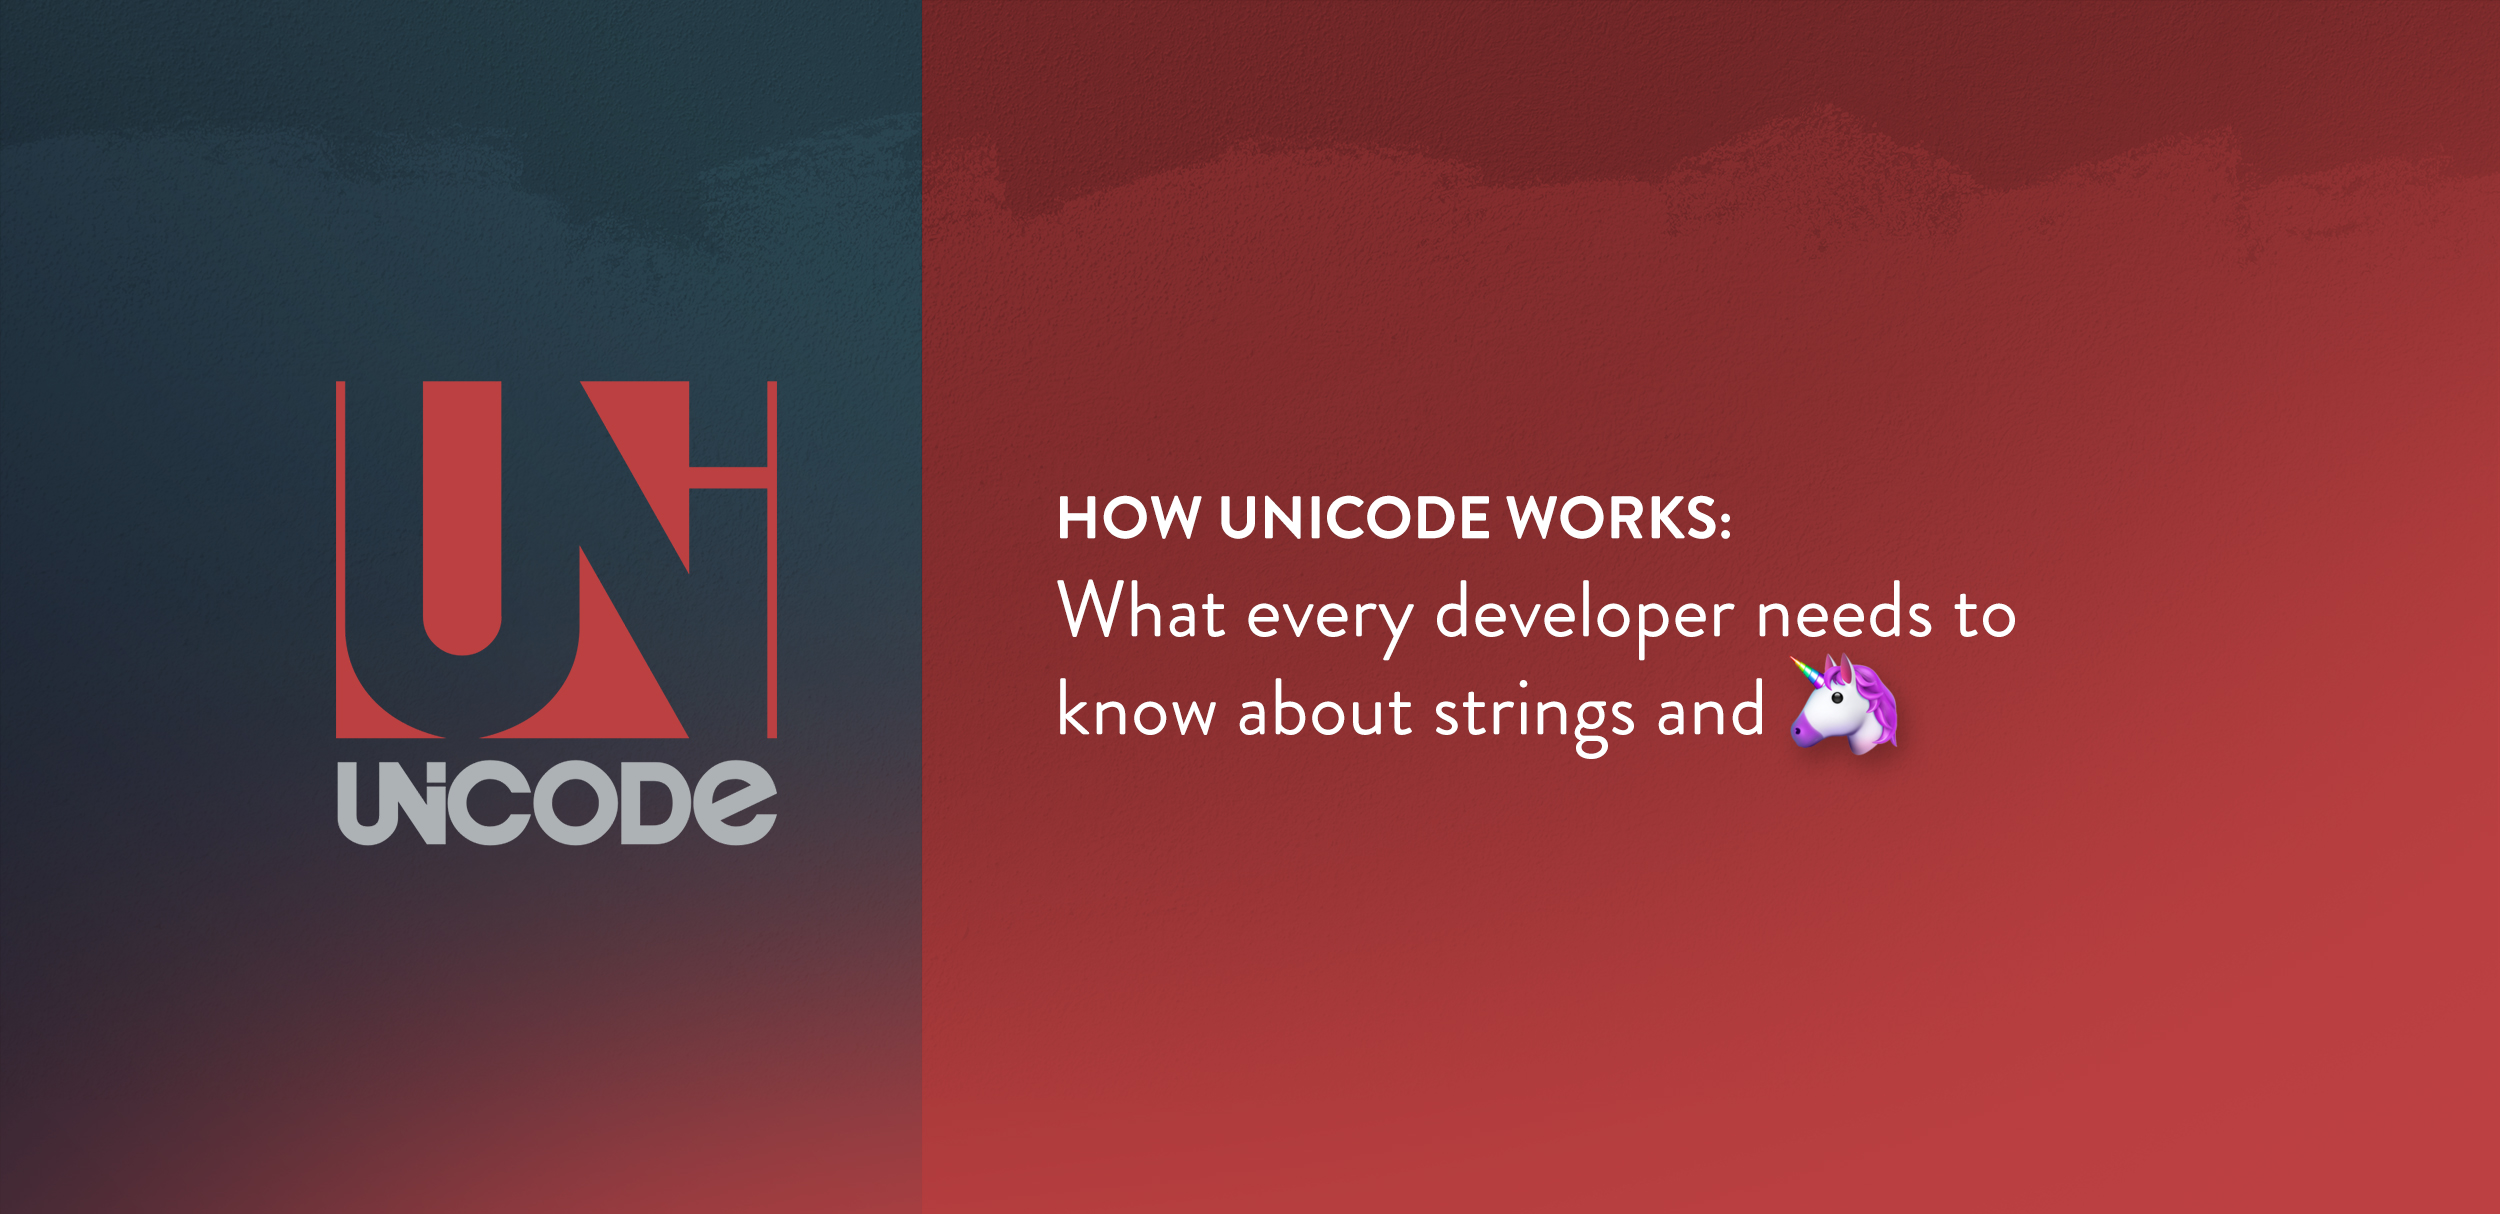 How Unicode Works: What every developer needs to know about strings